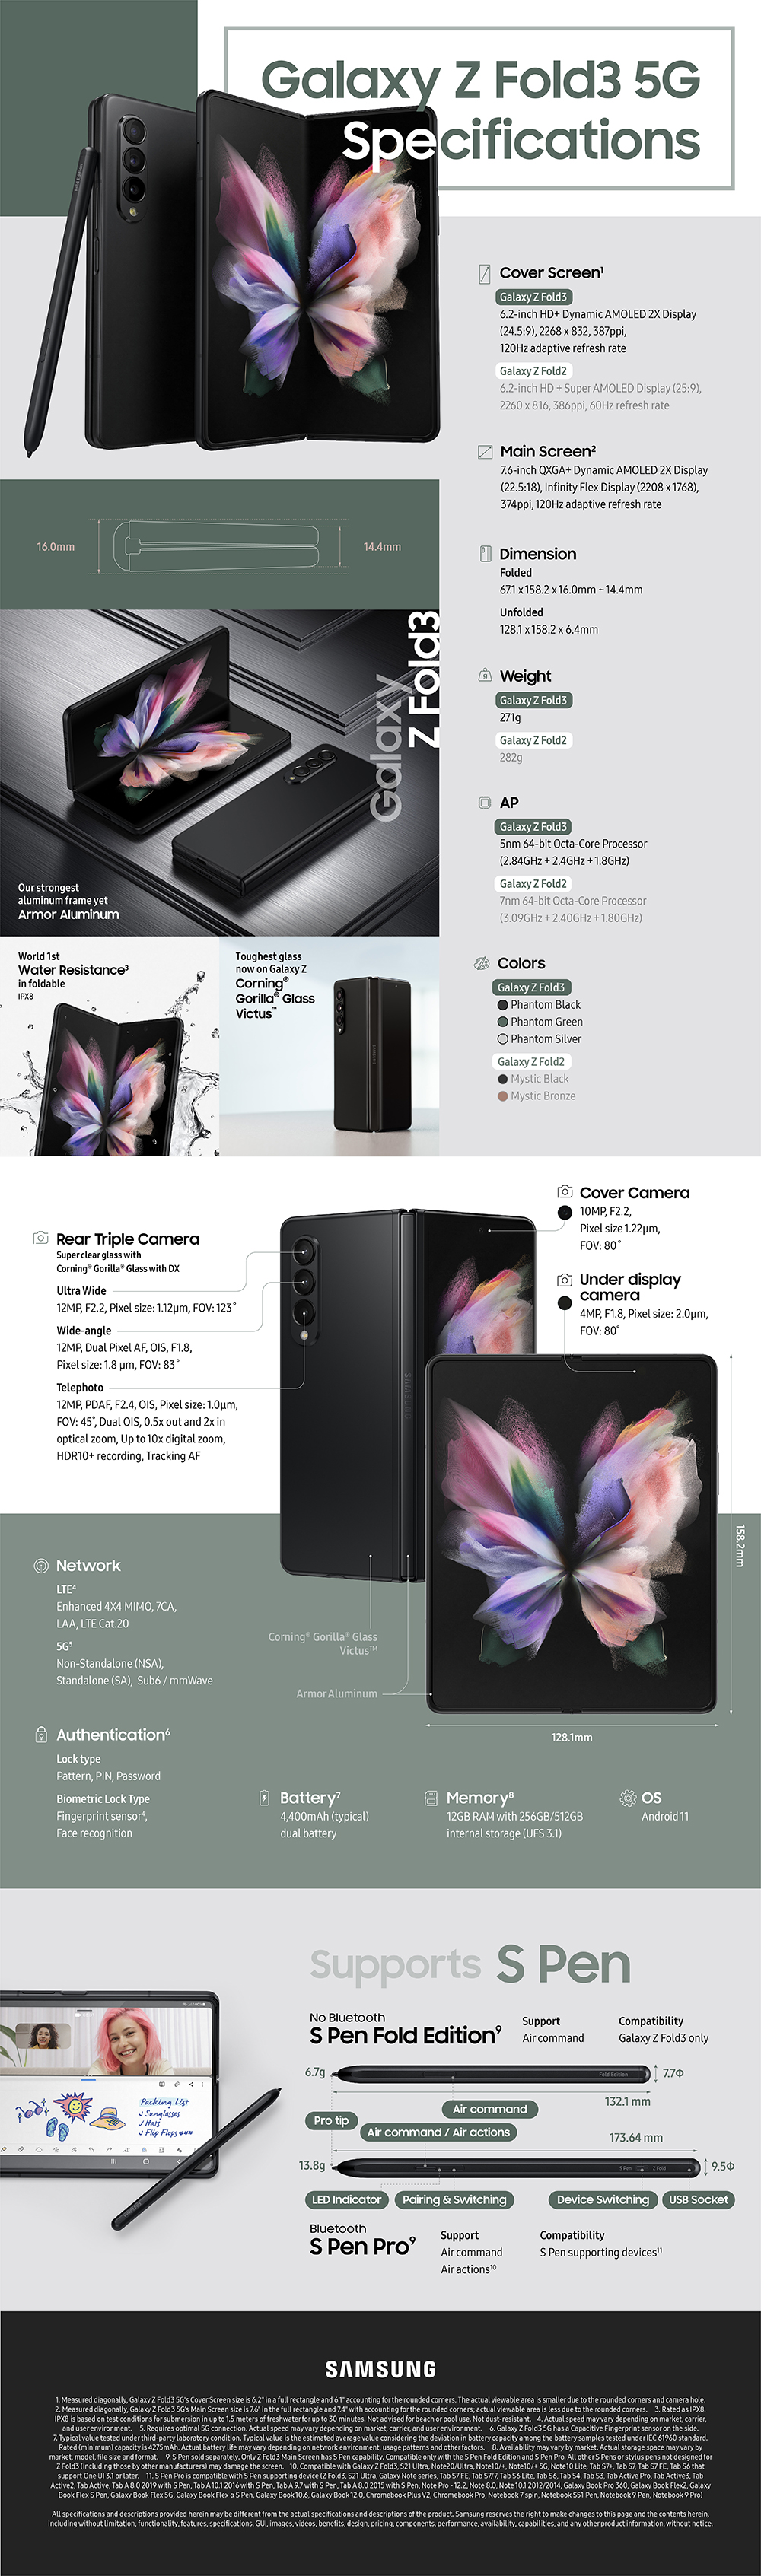 01 galaxy zfold3 5g product specifications - Samsung unveils Galaxy Z Fold 3 - Checkout the specs!